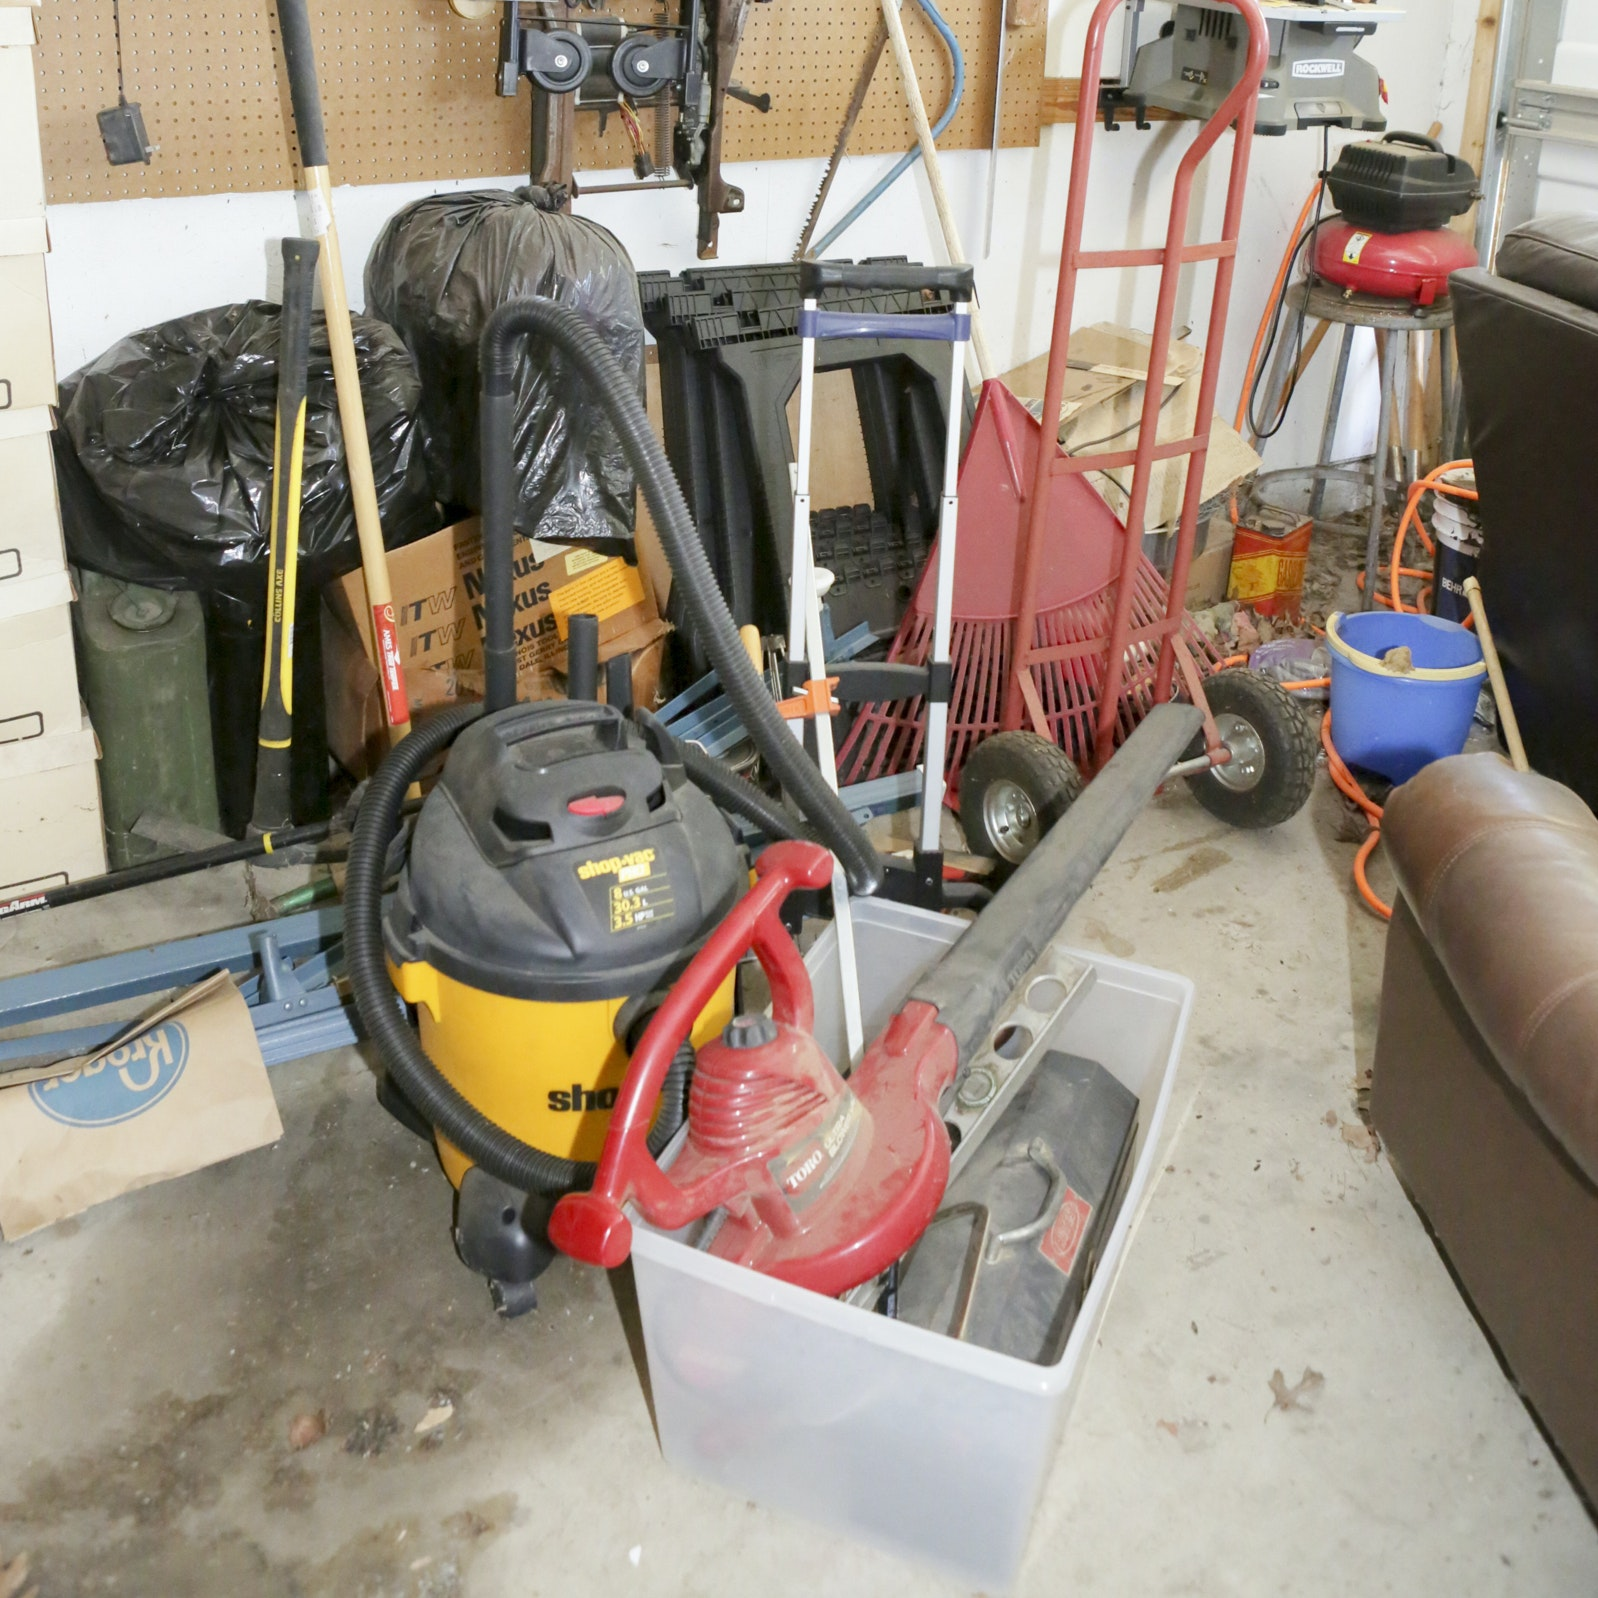 Shop Vac, Leaf Blower, Saw Horses and More